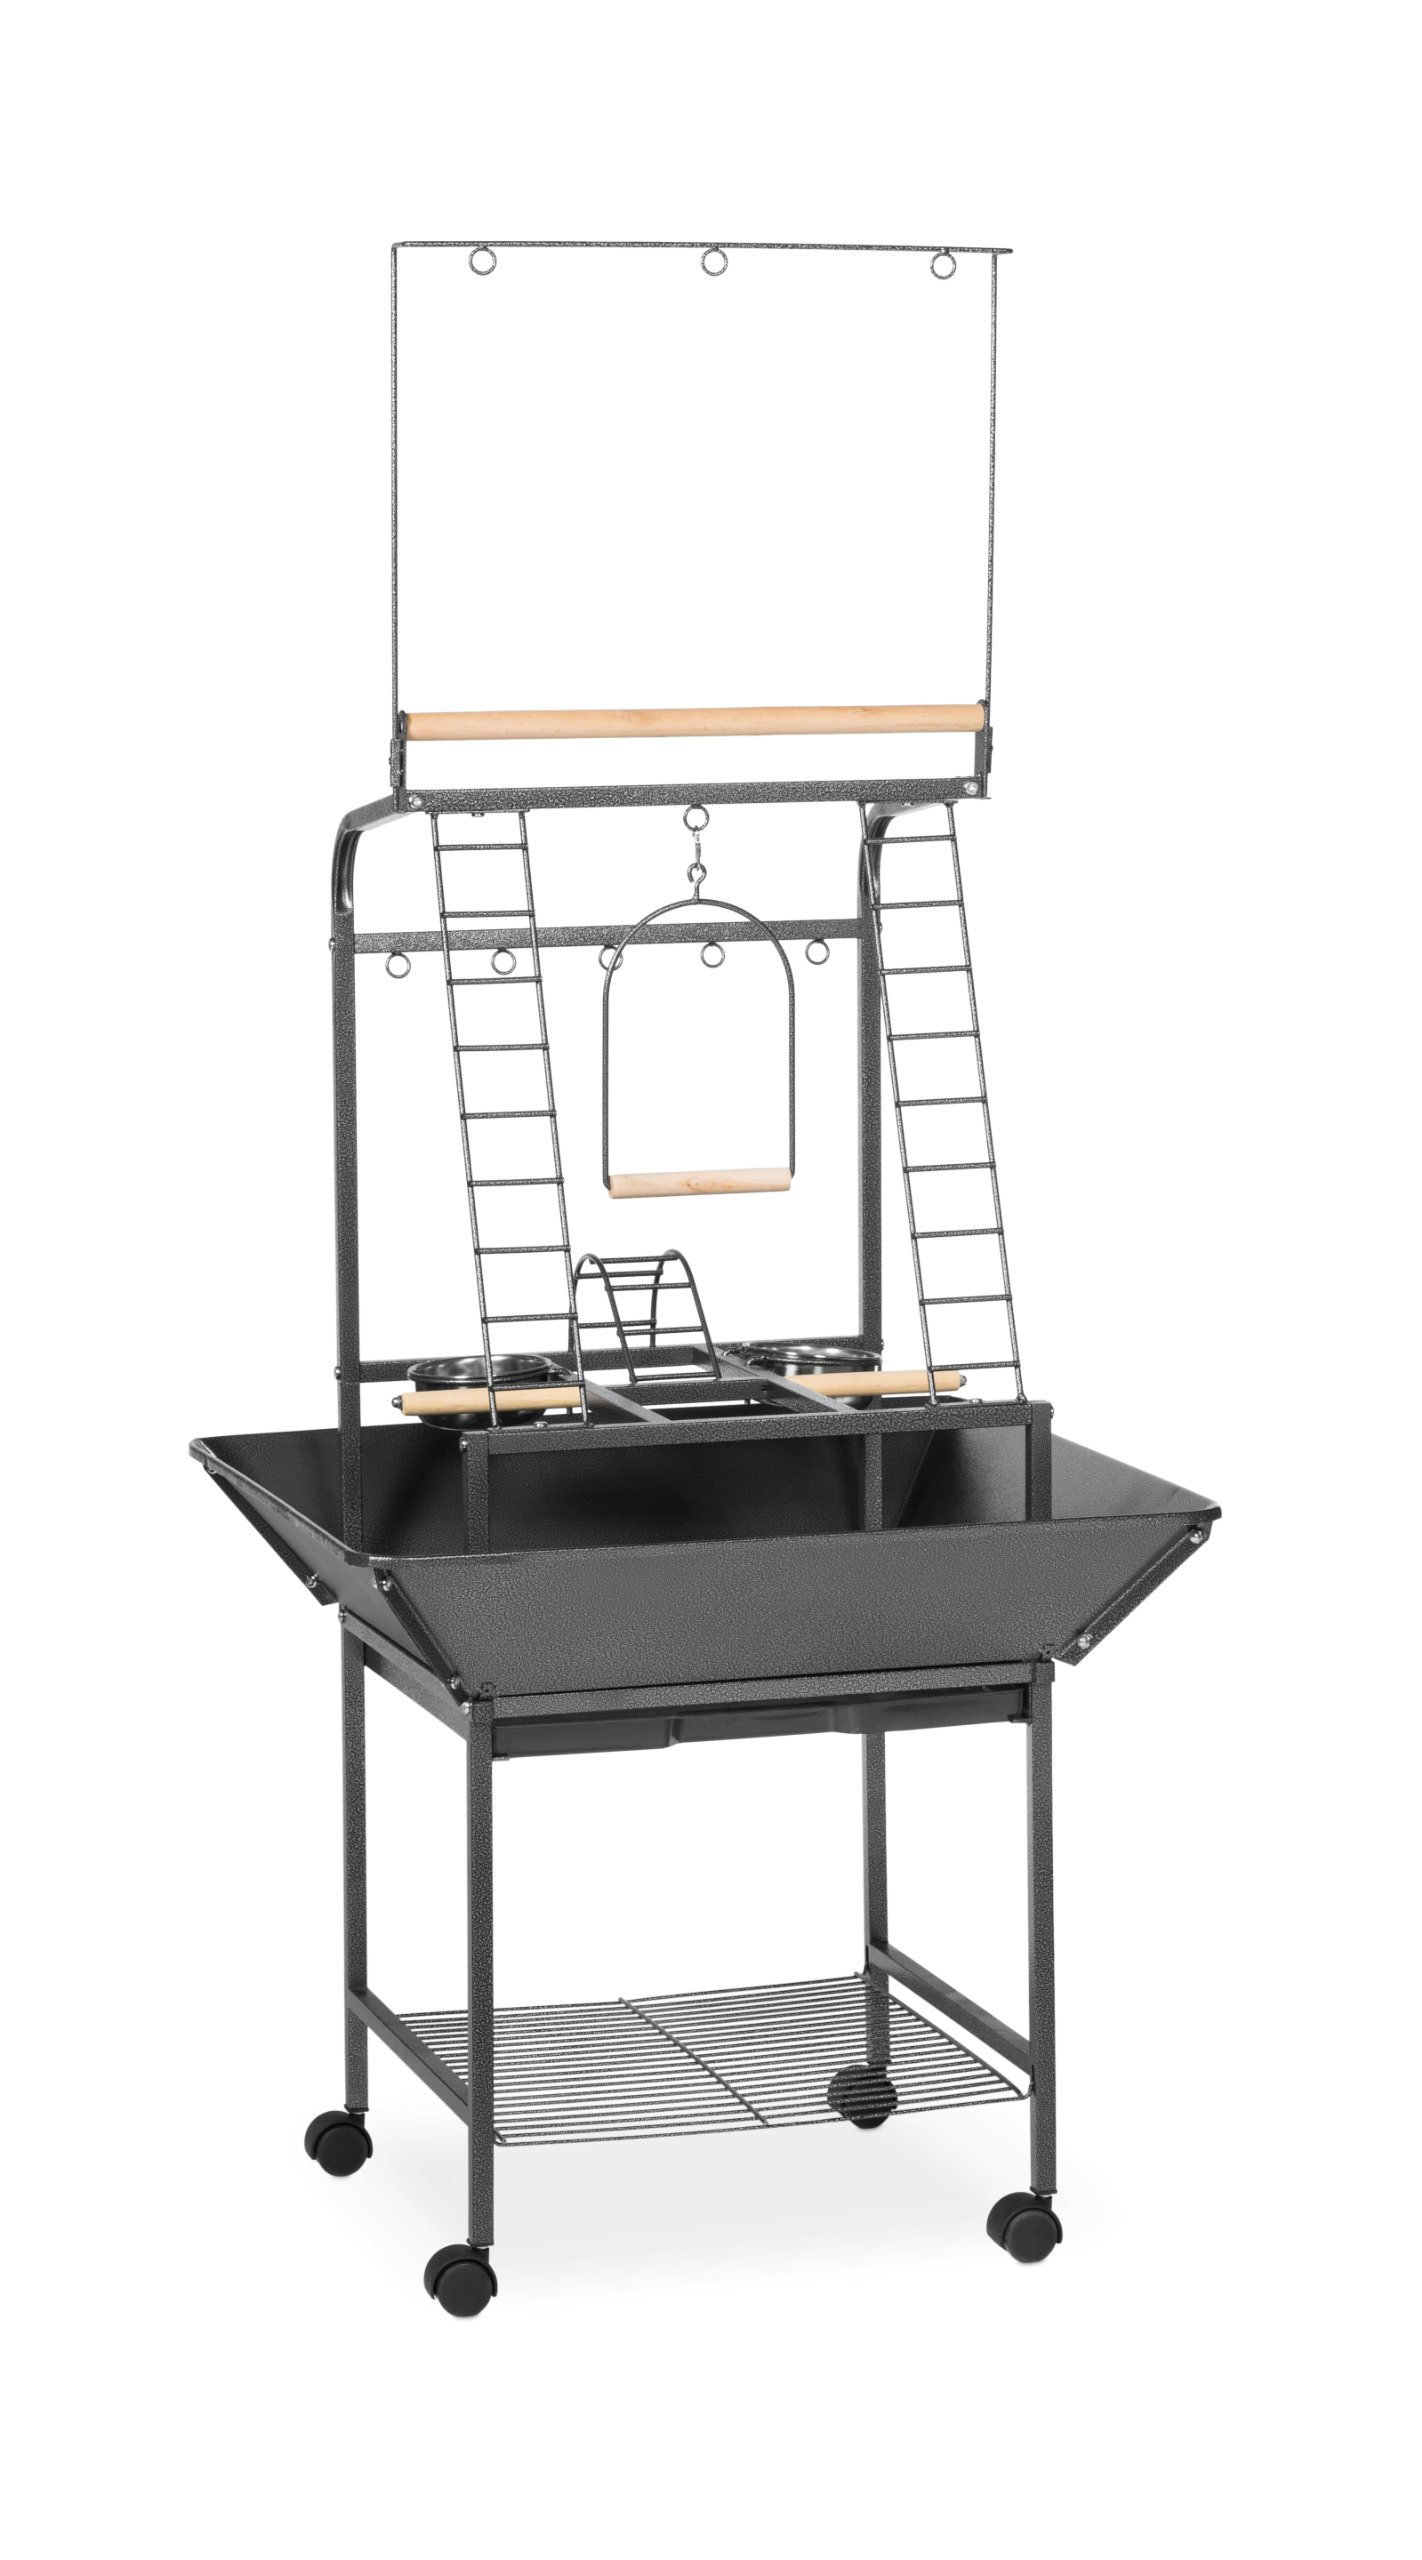 Prevue Pet Products Small Parrot Playstand 3181 Black Hammertone, 17.625-Inch by 16-1/2-Inch by 59-Inch by Prevue Pet Products